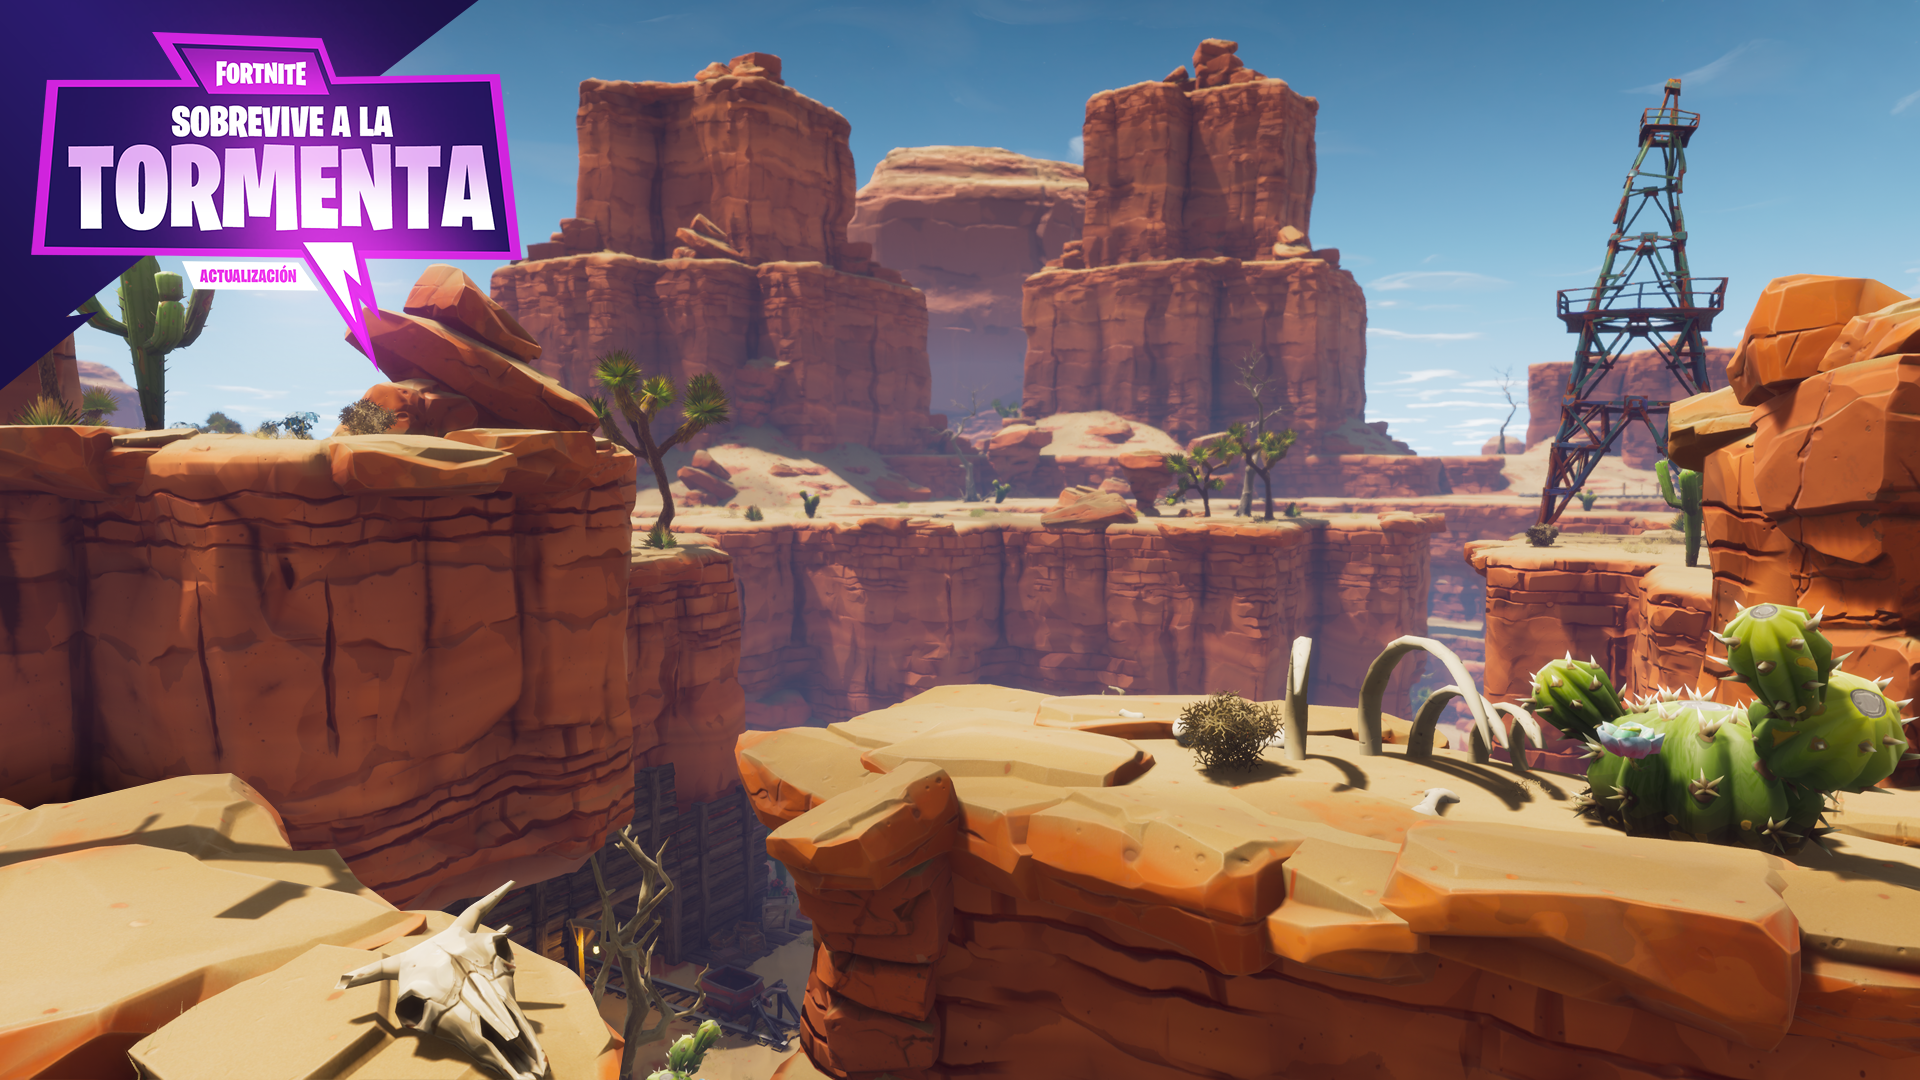 Fortnite%2Fblog%2Fsurvive-the-storm---release-notes%2FES_1-Canny-Valley-1920x1080-6243974833f0bcaee29549d3e58c929ec0740c57